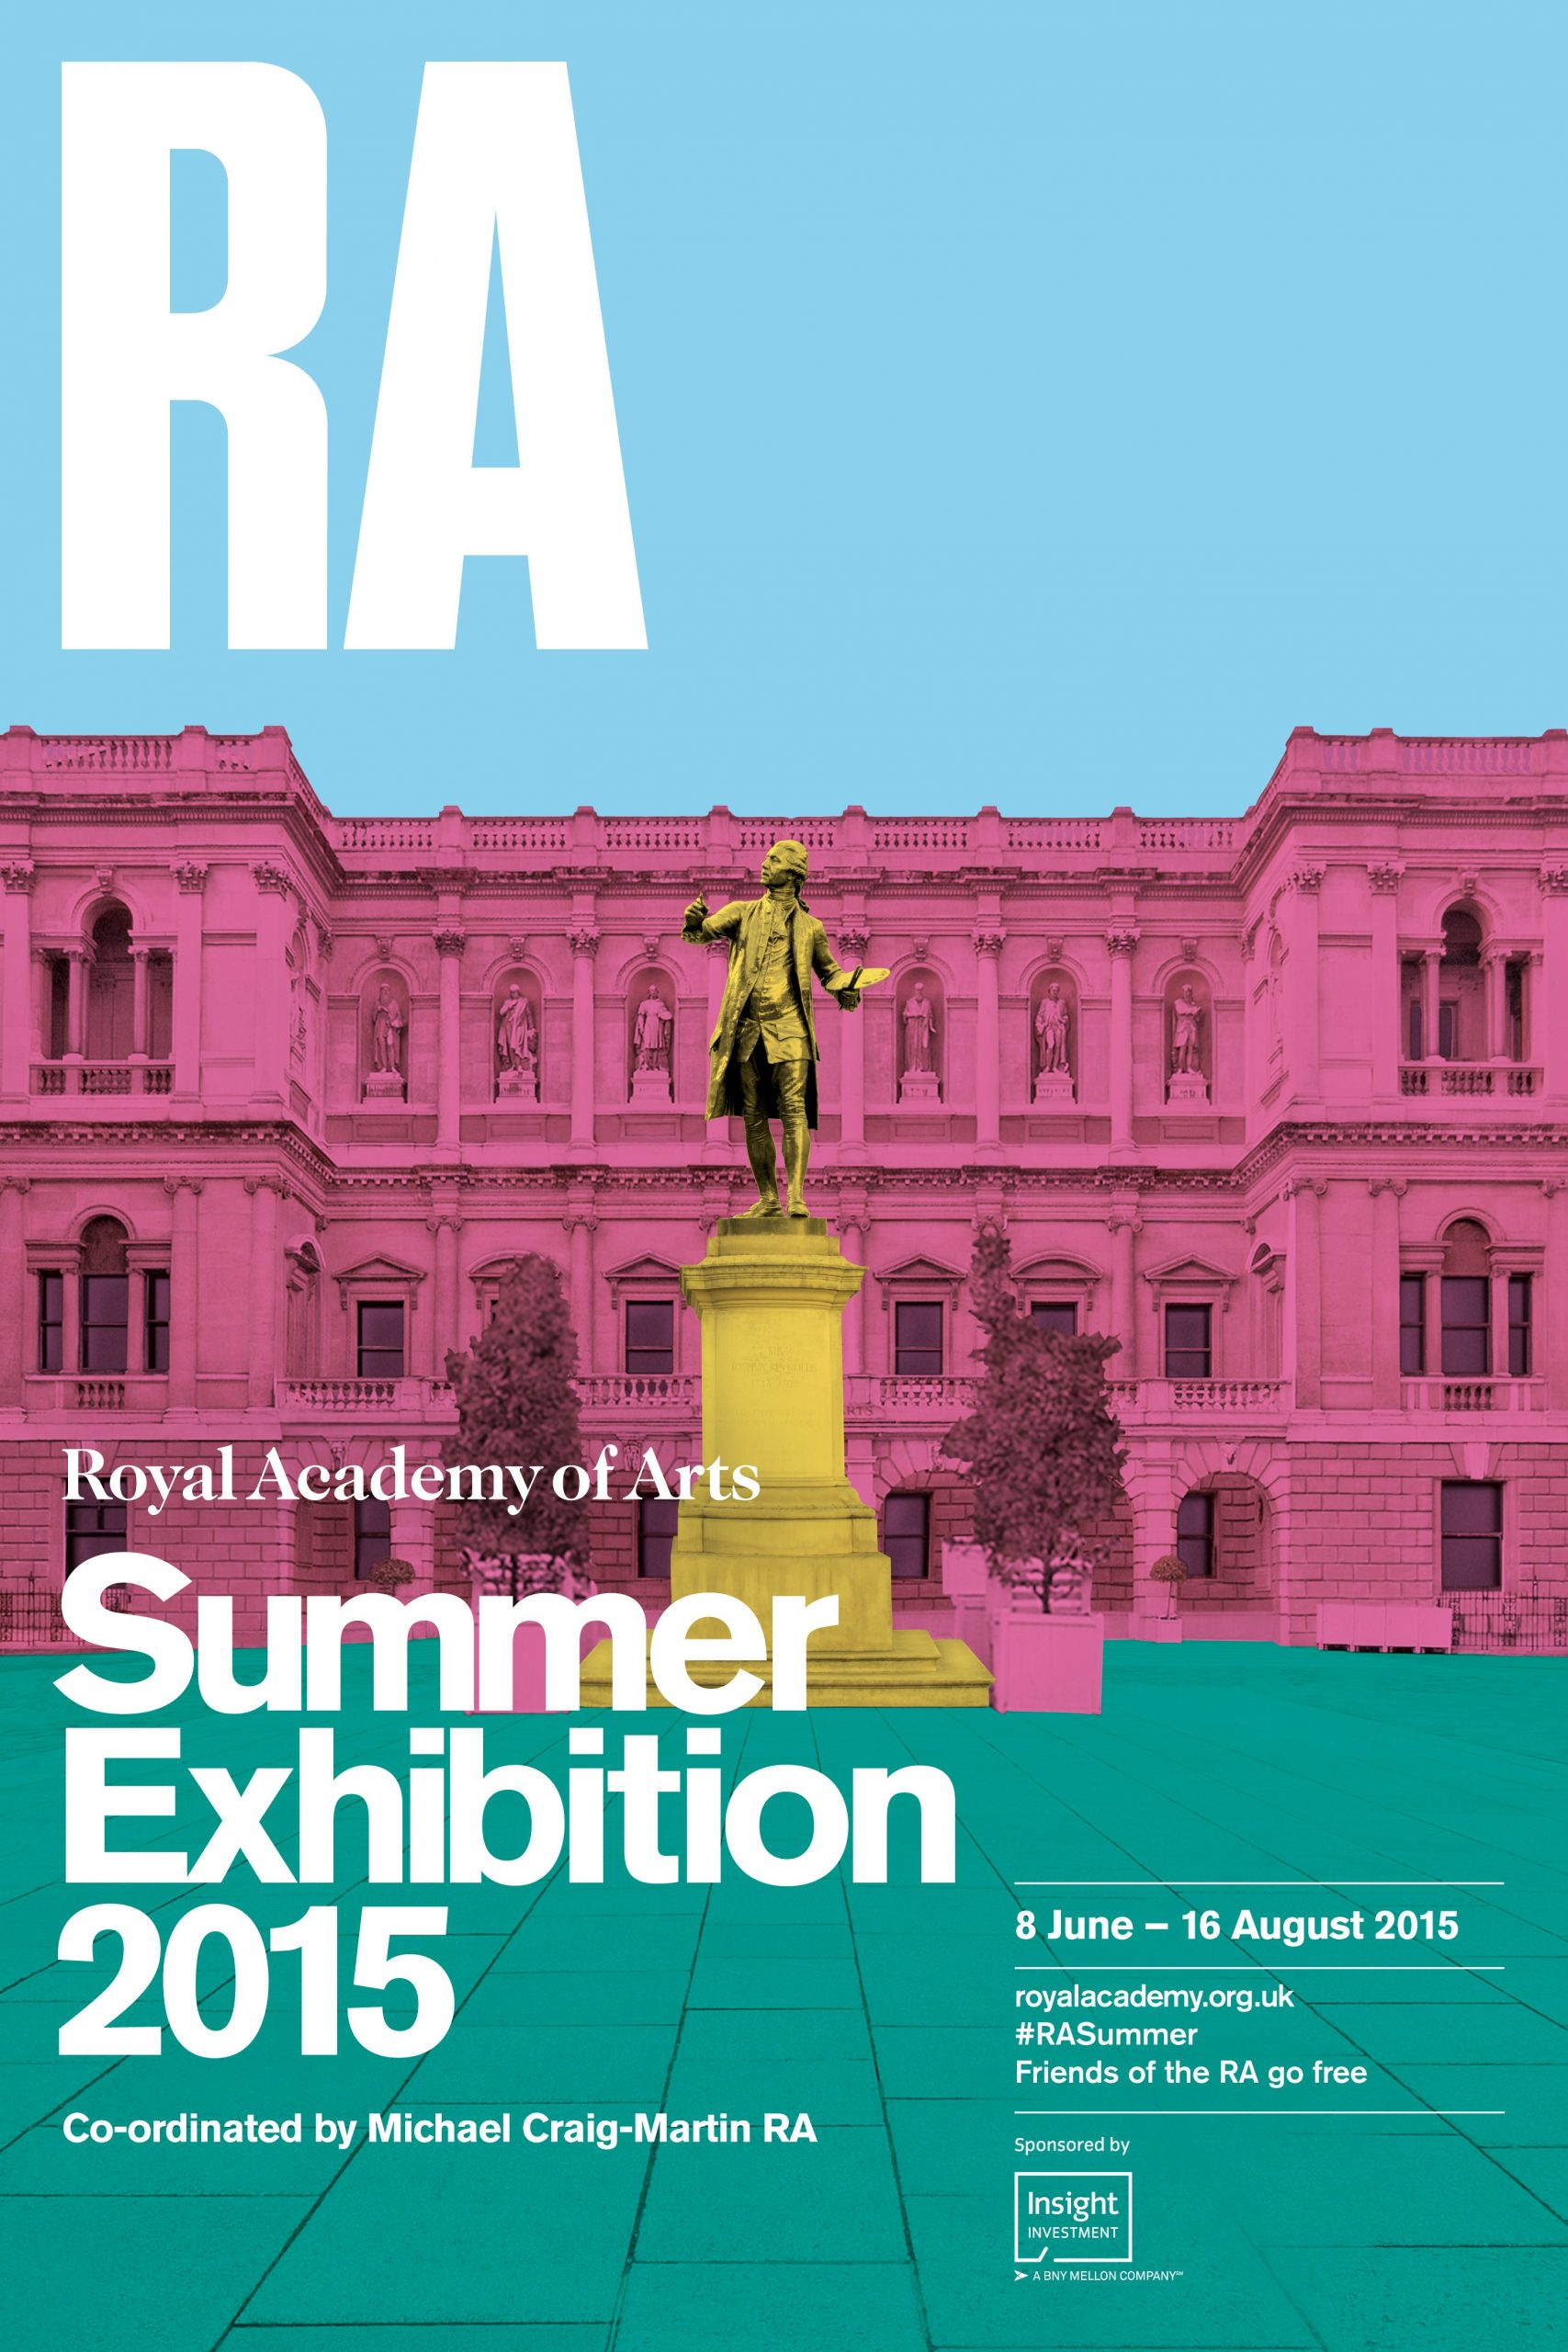 Royal Academy Summer Exhibition flyer